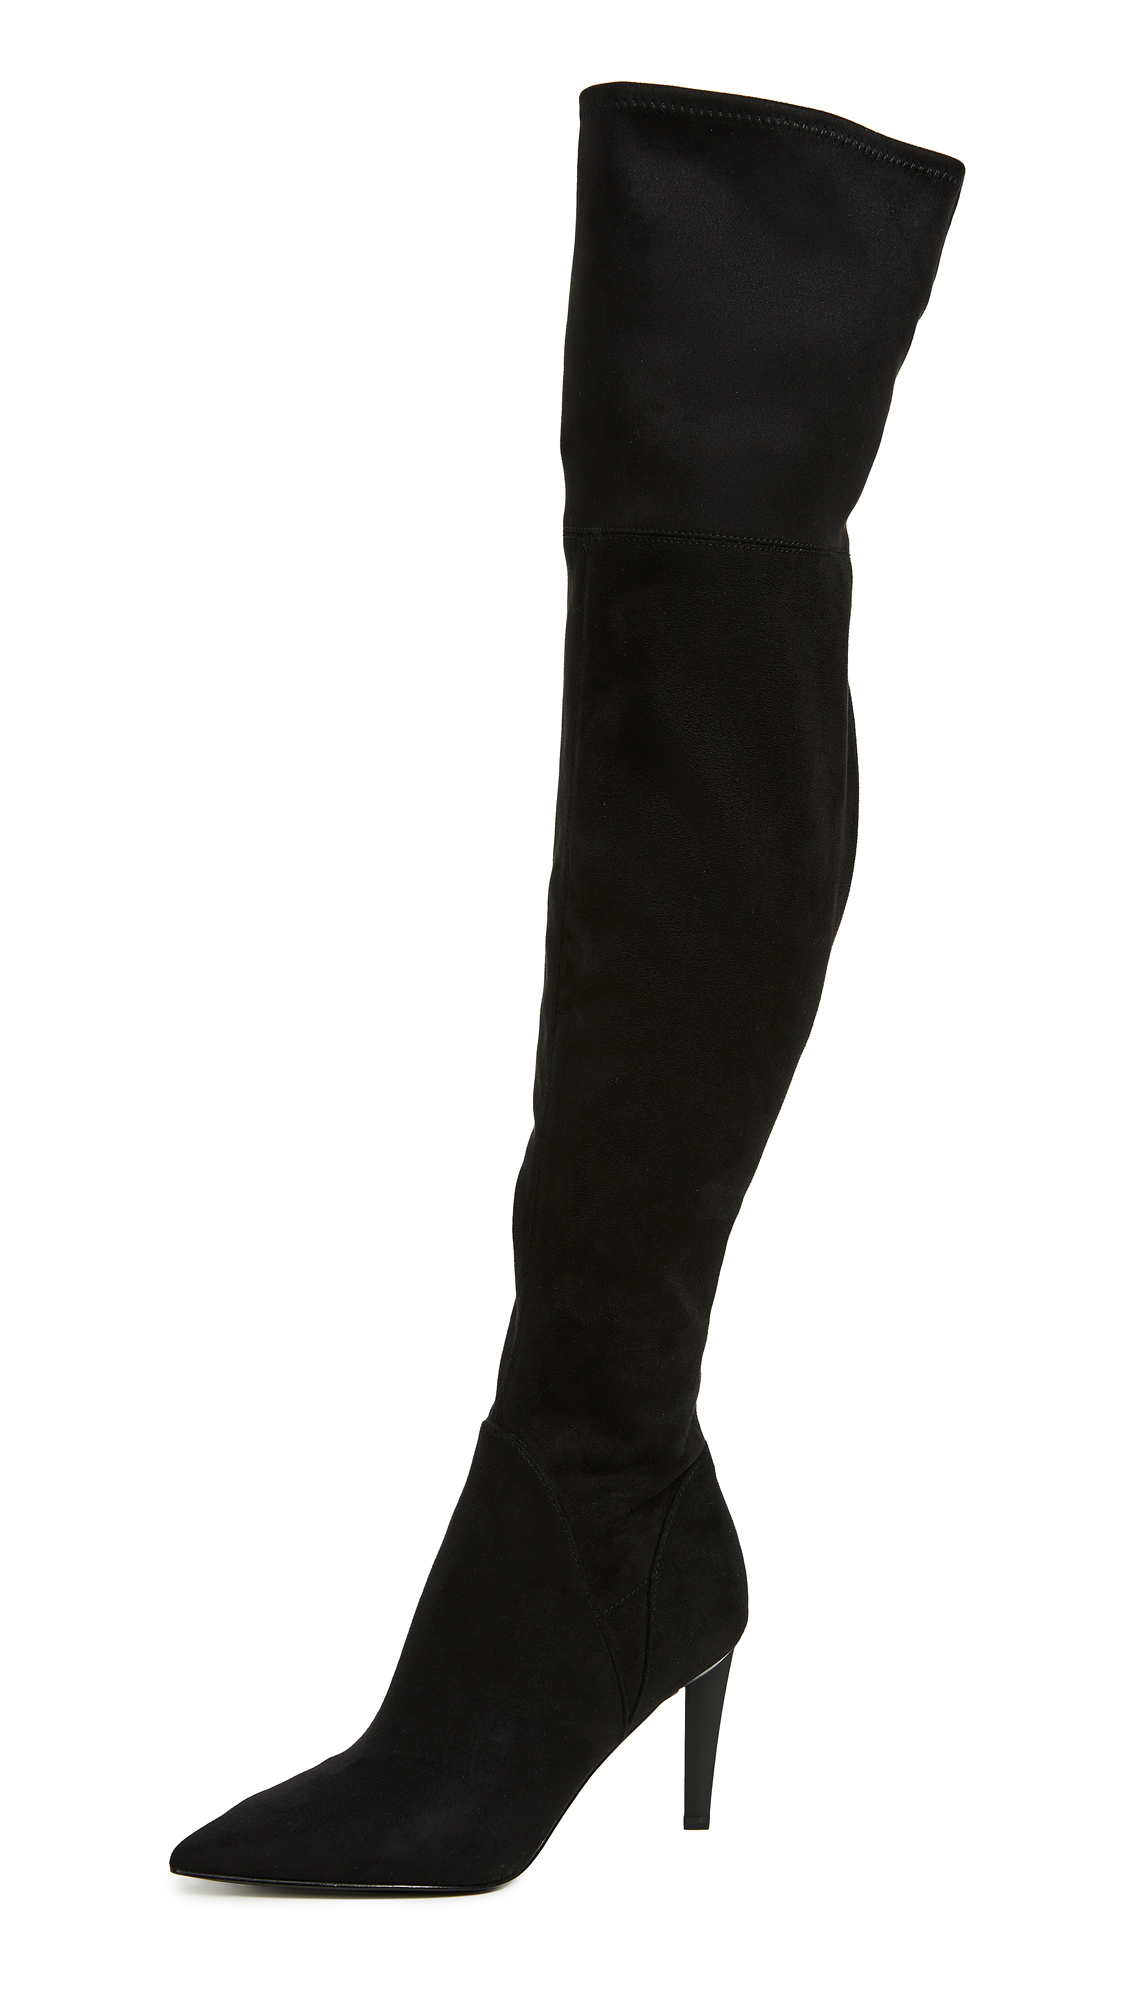 KENDALL + KYLIE Zoa Over the Knee Boots - Black